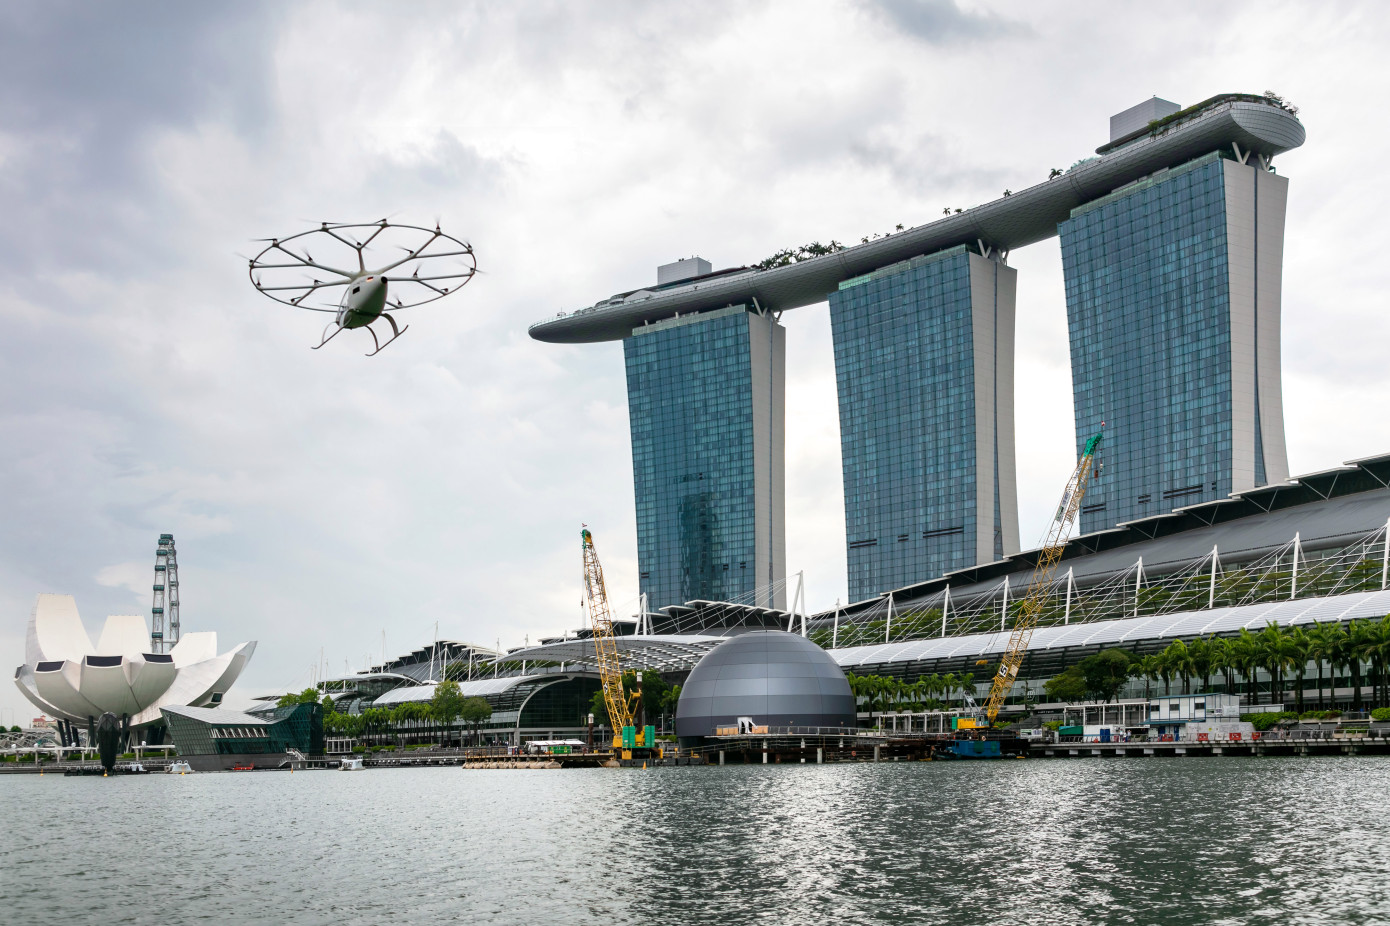 Air mobility startup Volocopter in Singapore. Image: TechCrunch